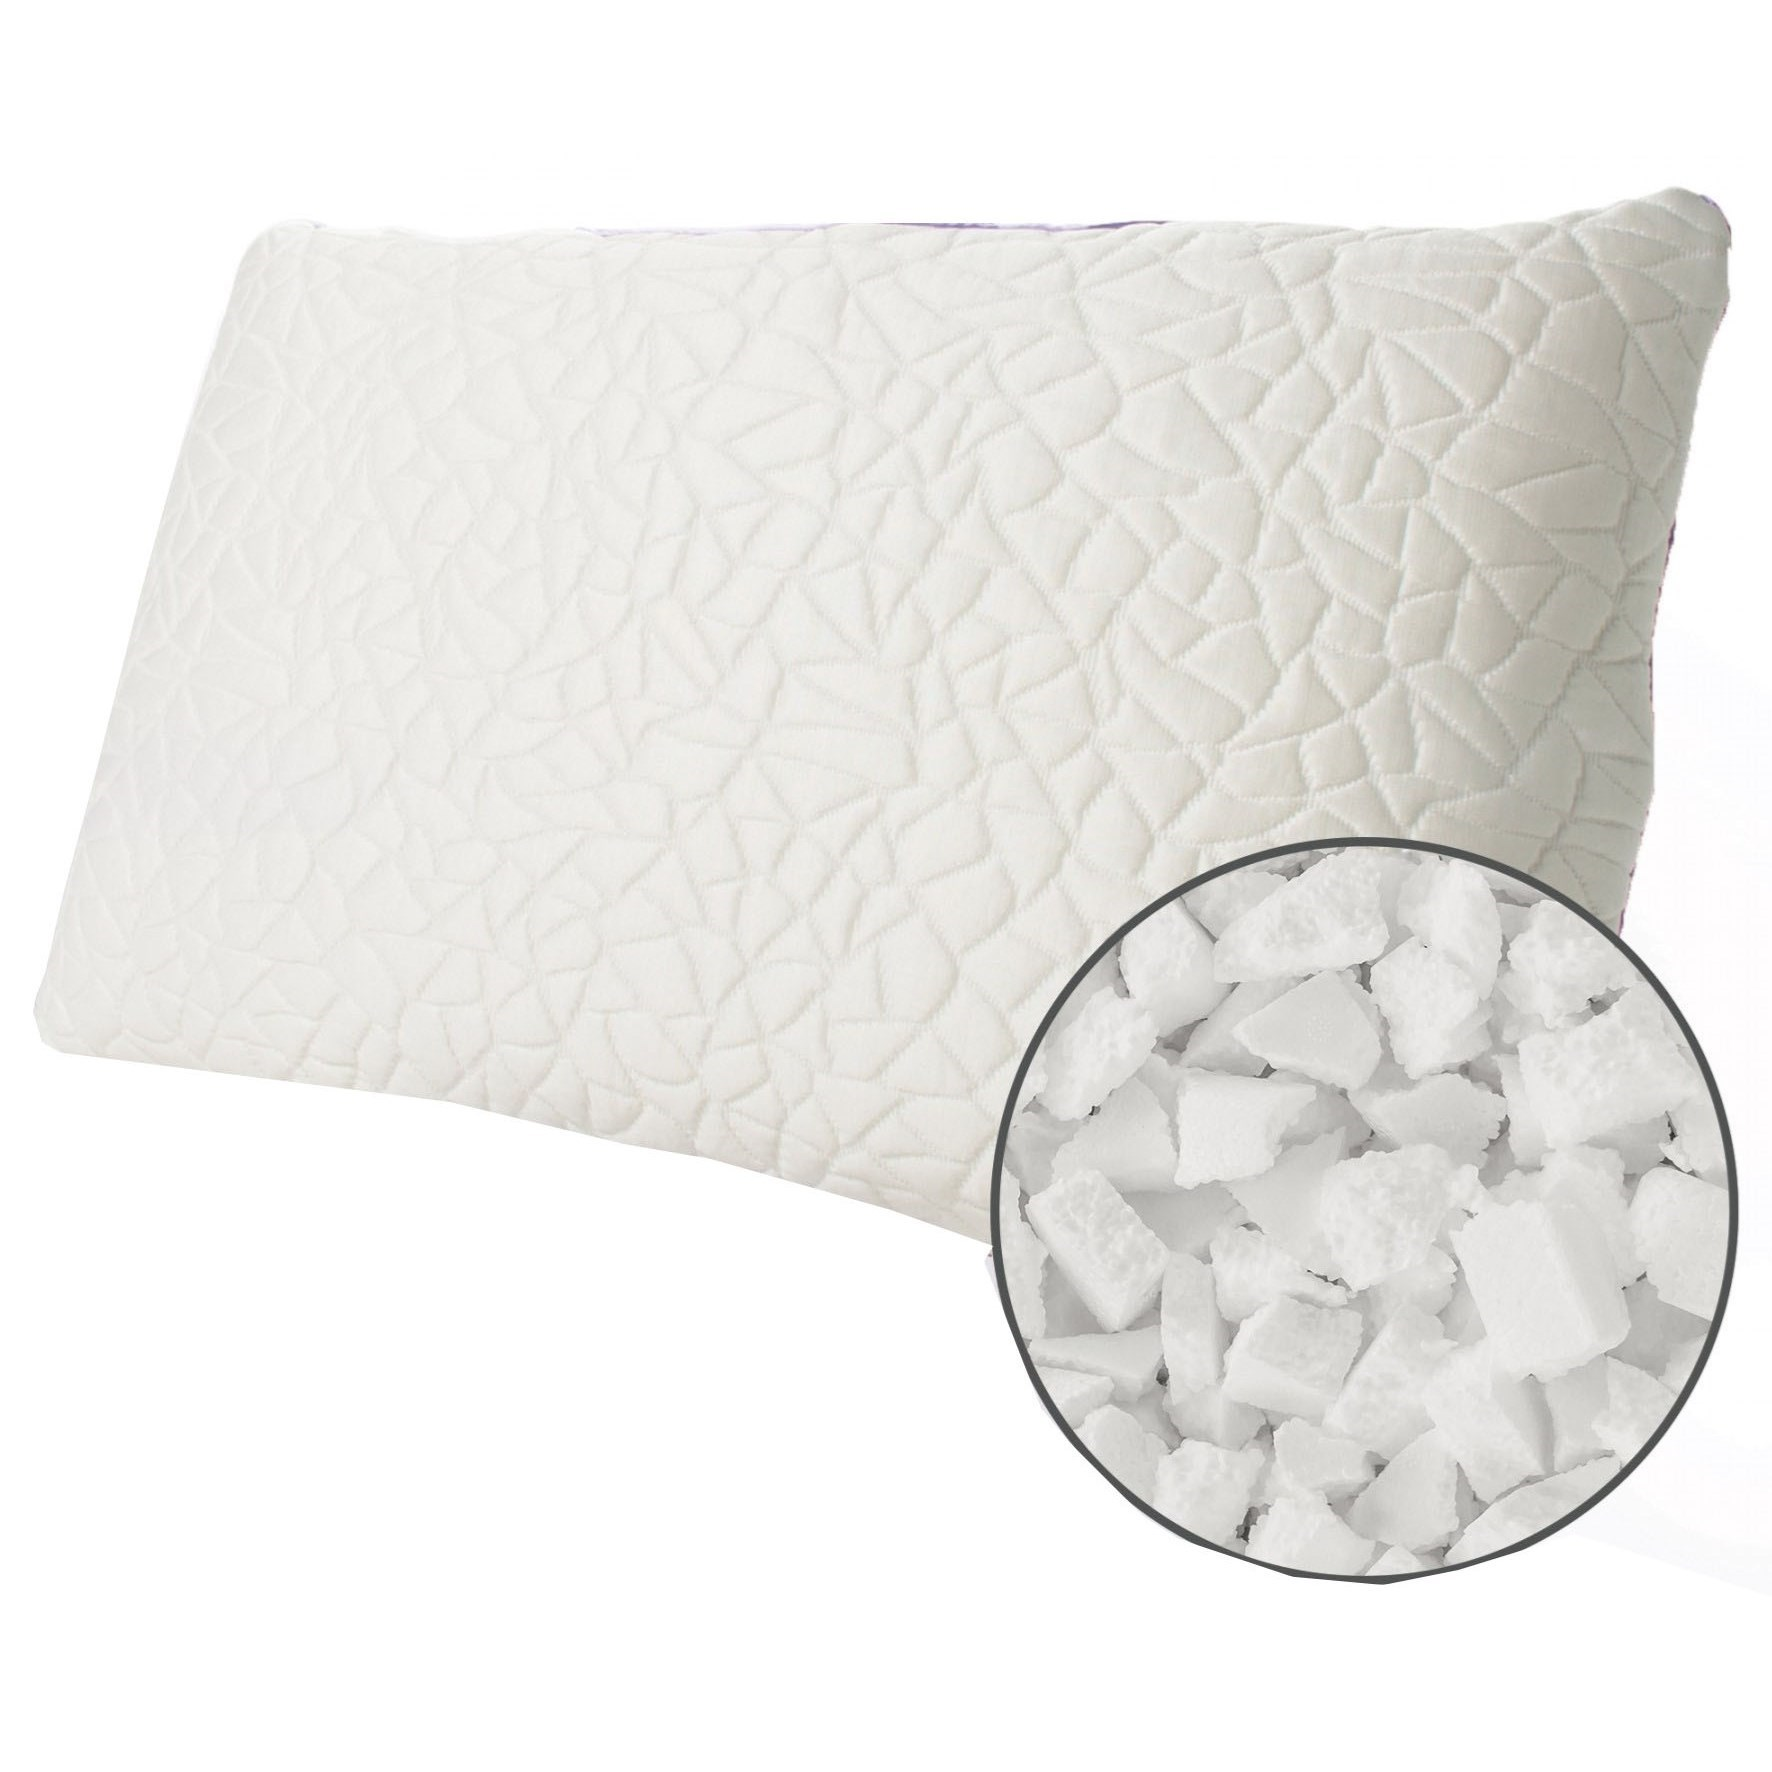 Firm Memory Foam Pillow Snow Foam Cluster Cooling Pillow Queen Snow Cooling Pillow With Firm Memory Foam Cluster Fill 38 Oz By Protect A Bed At Dunk Bright Furniture